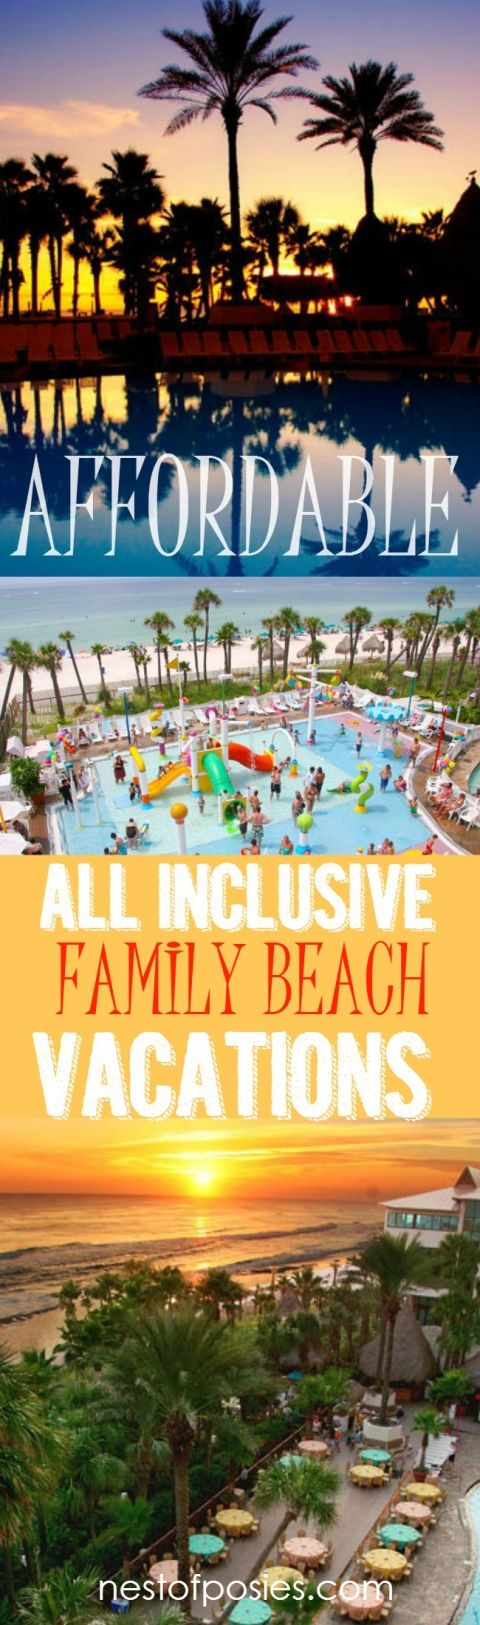 Affordable All Inclusive Family Beach Vacations. Meals, kids' activities or kids' camp, nightly movies, ocean front and so much more!